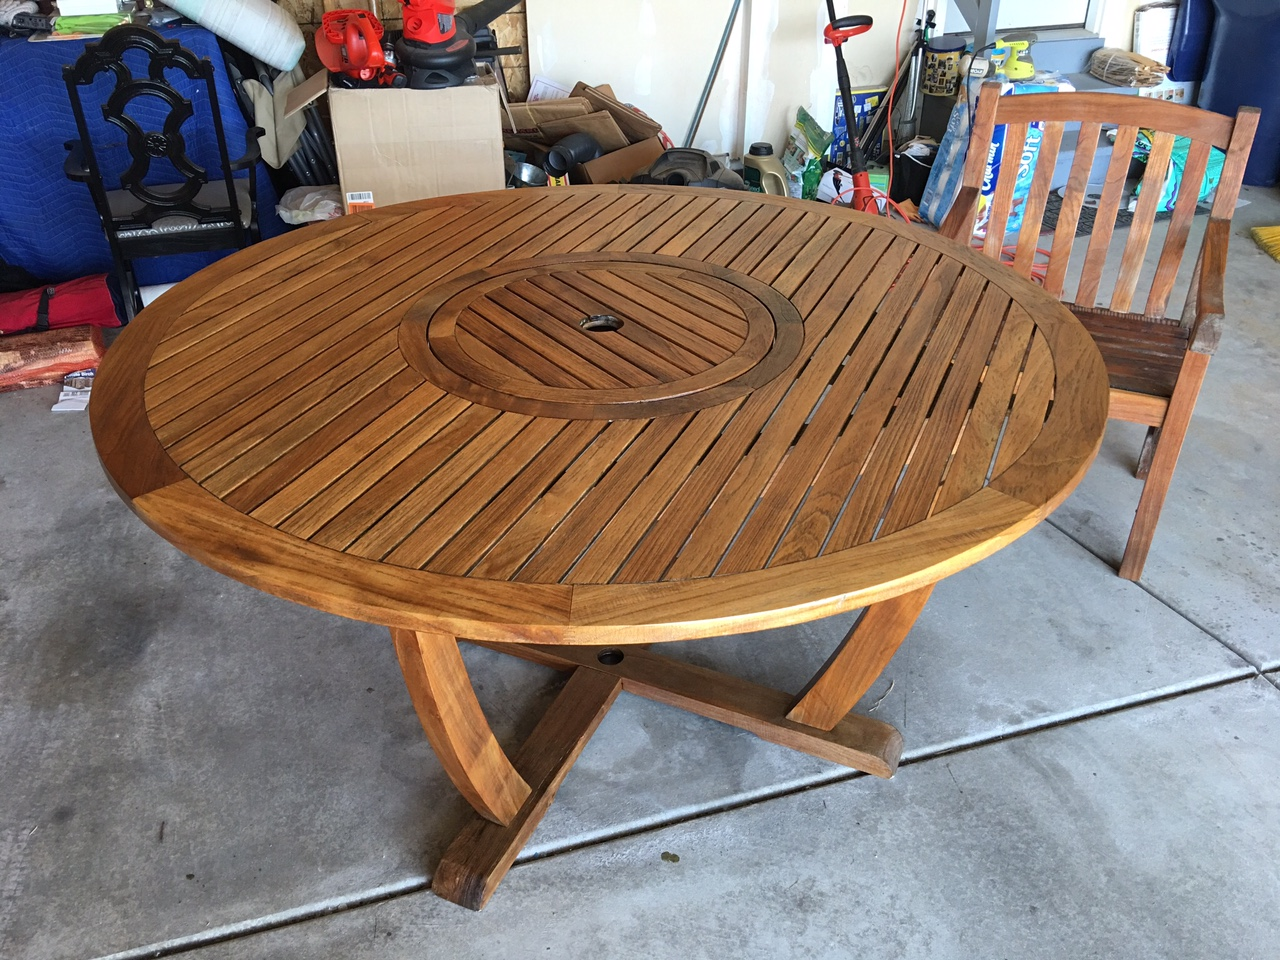 Still needs a few more coats of Varnish.   The lazy Susan is spinning great!